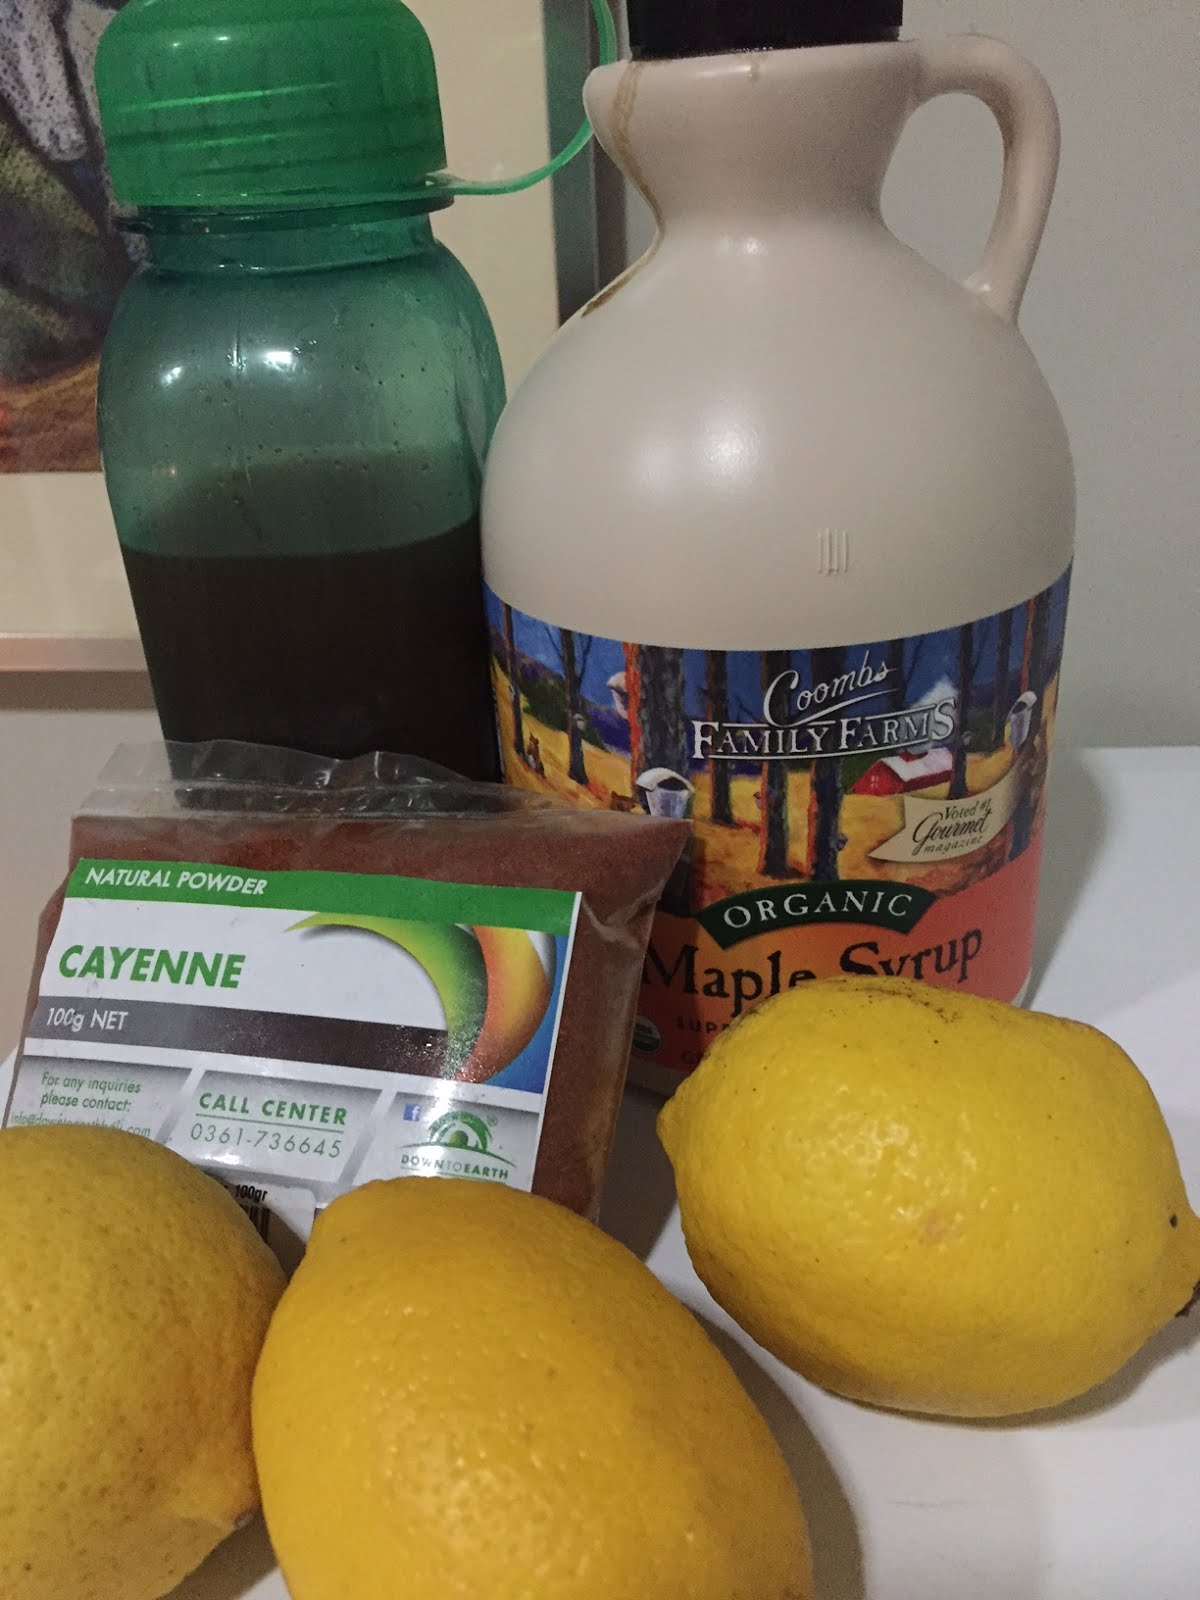 Discussion on this topic: The Truth About the Master Cleanse Diet, the-truth-about-the-master-cleanse-diet/